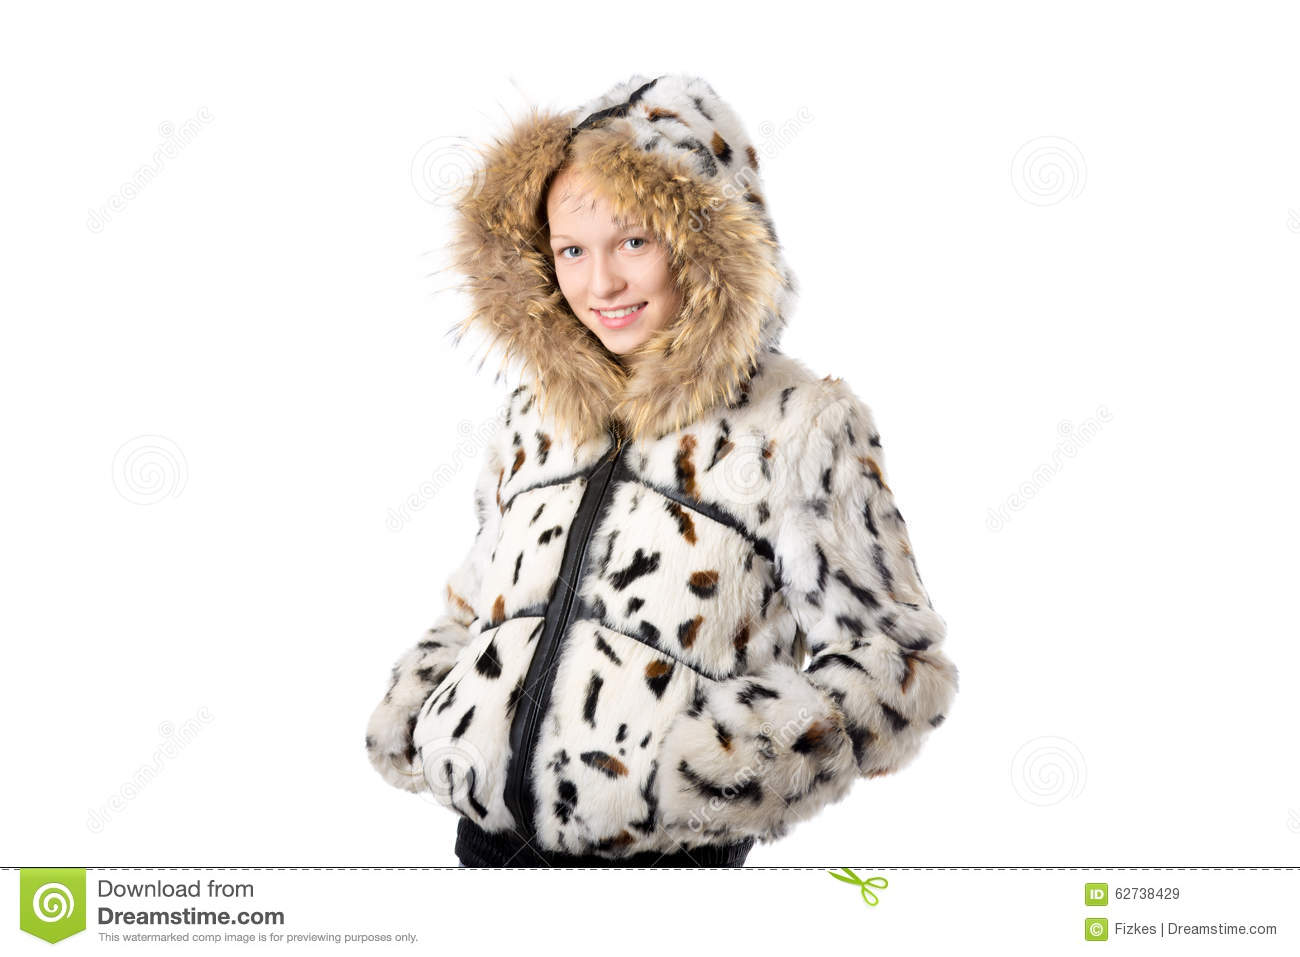 972b4e7ddcd4 Girl In Winter Coat With Hood Stock Image - Image of cheerful ...